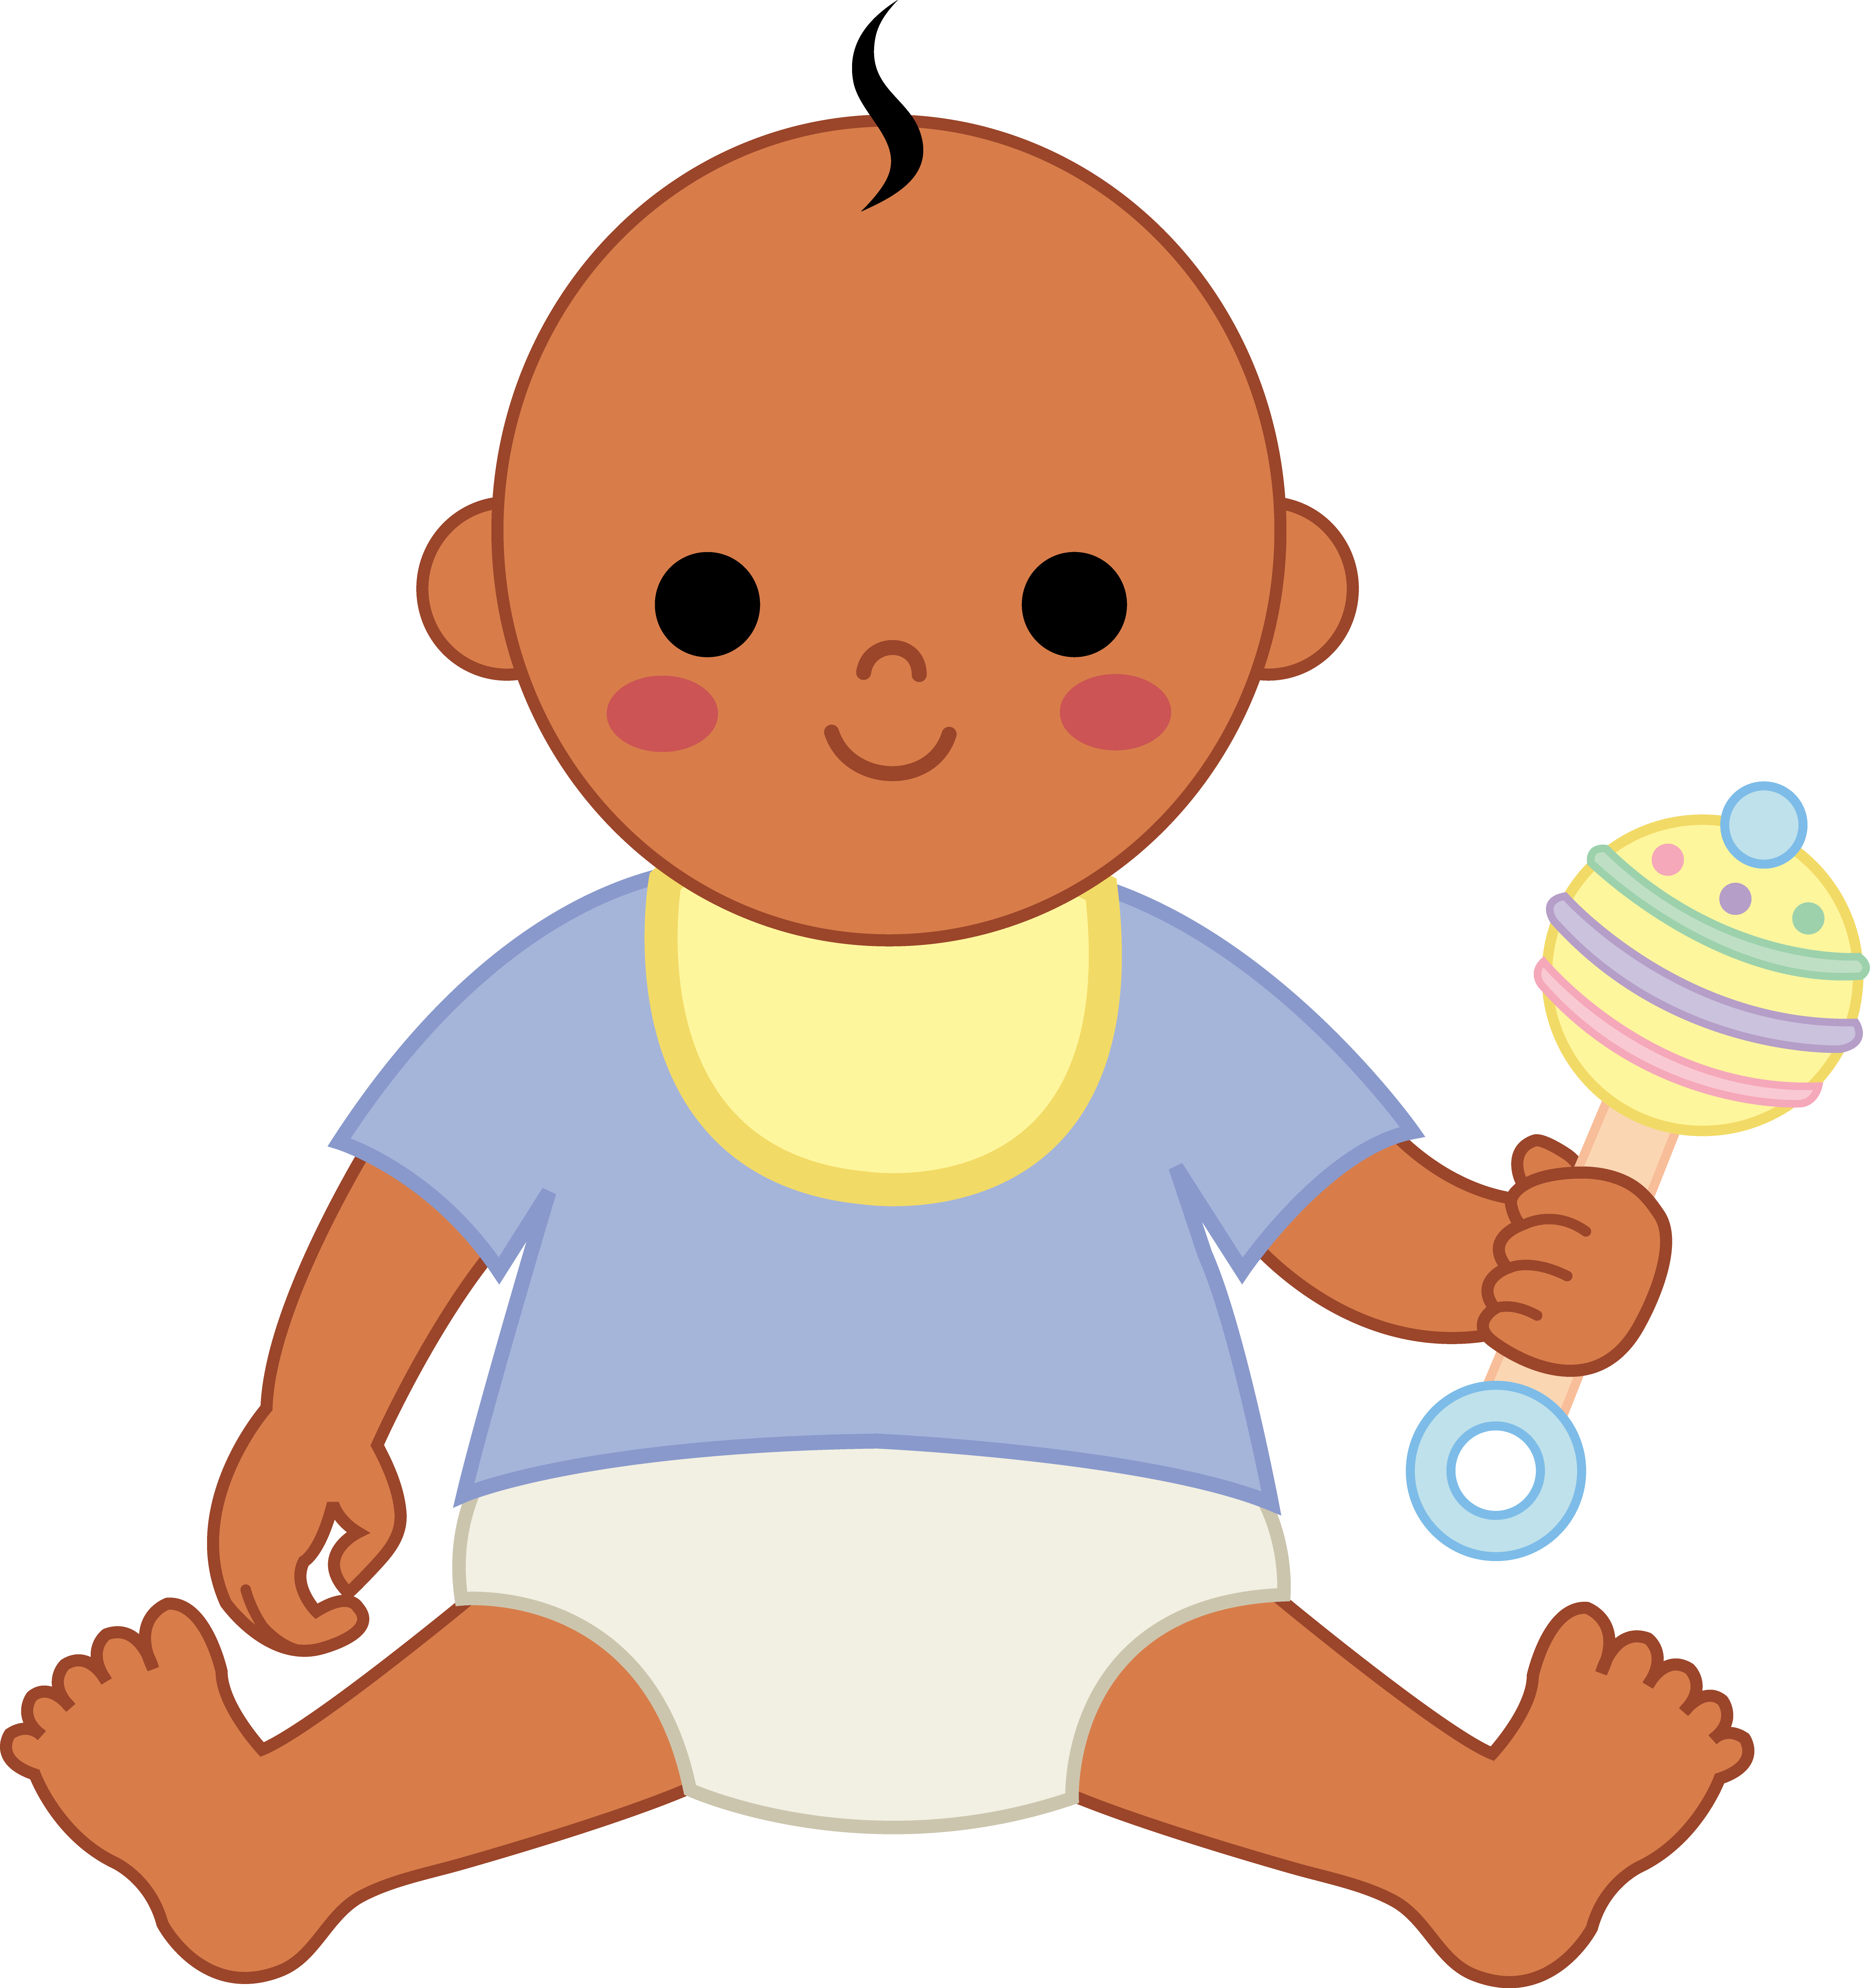 Black Baby Png - ClipArt Best